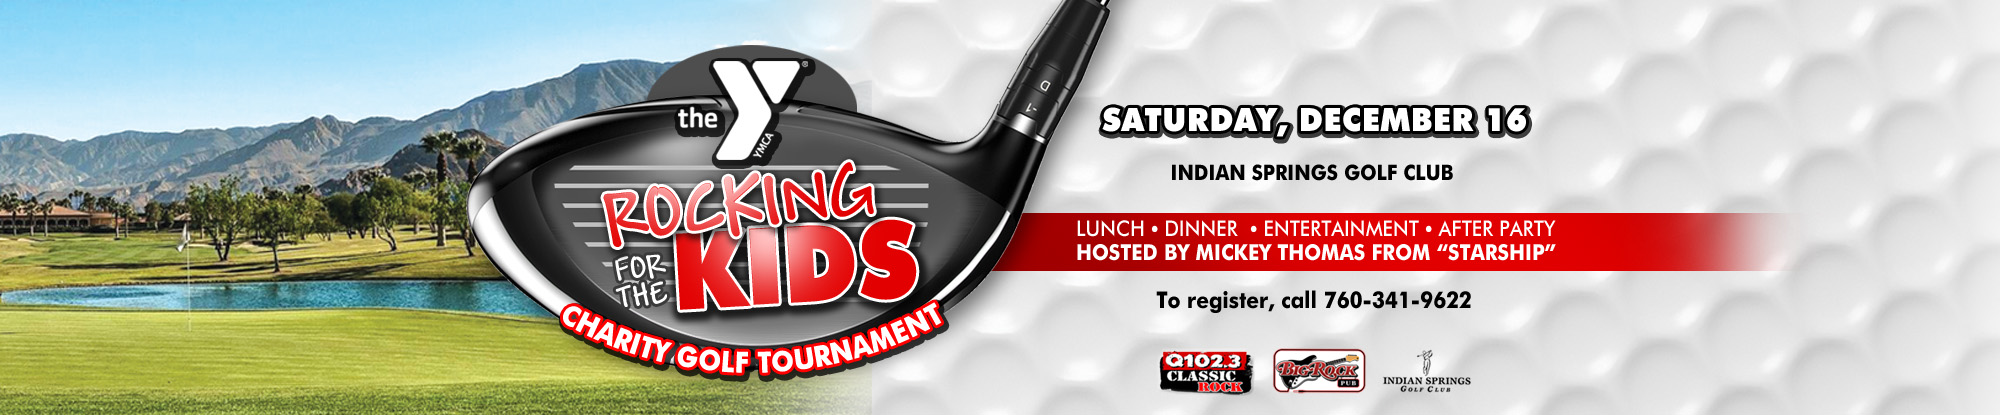 Rocking for the Kids Charity Golf Tournament - December 6th, 2017